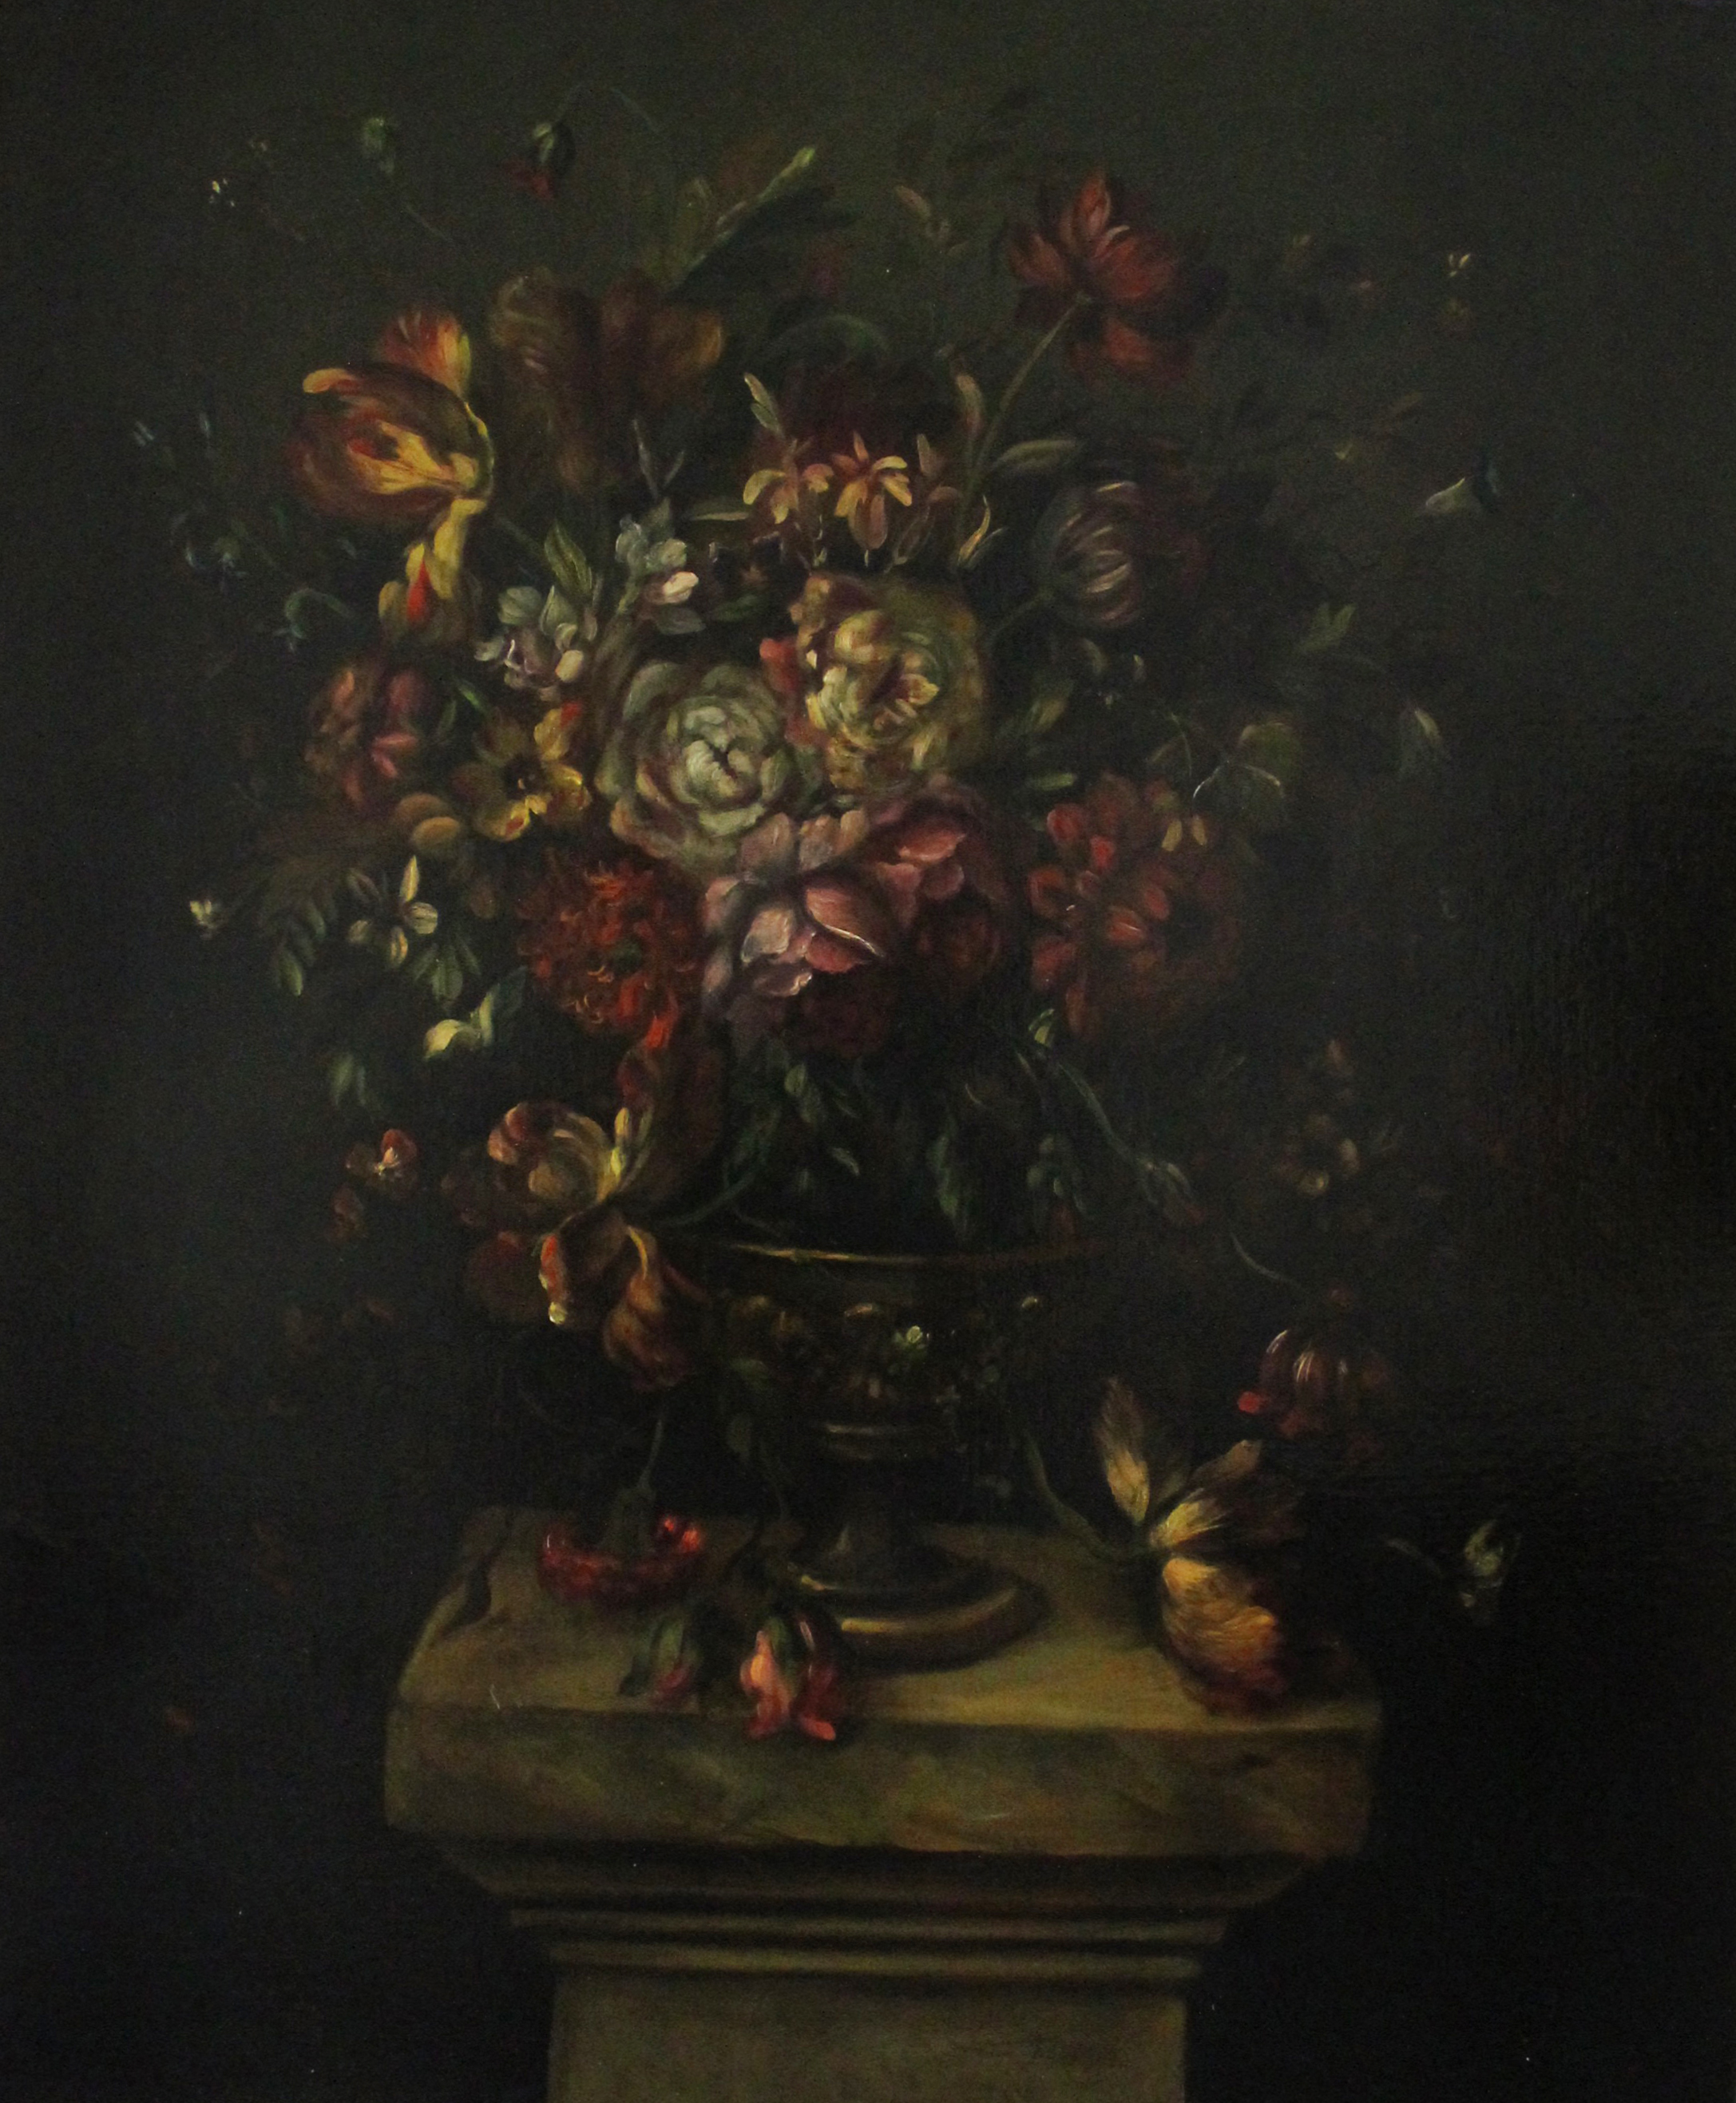 Los 293 - Jean-Baptiste Monnoyer (probably) A still life of assorted flowers in a vase on a stone pedestal